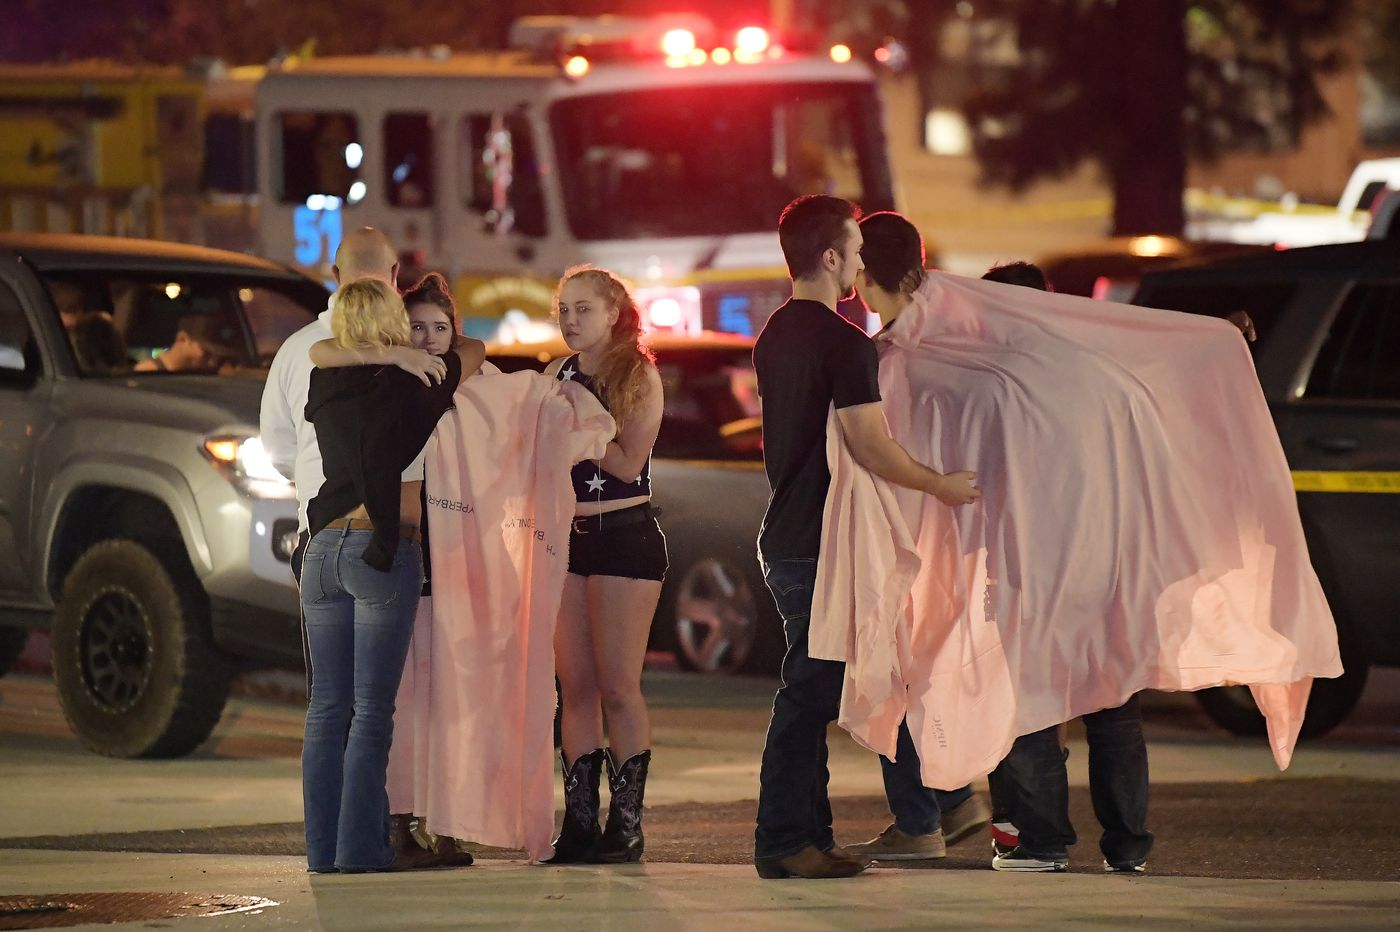 'It's a horrific scene': California bar shooting leaves 12 dead, including police officer